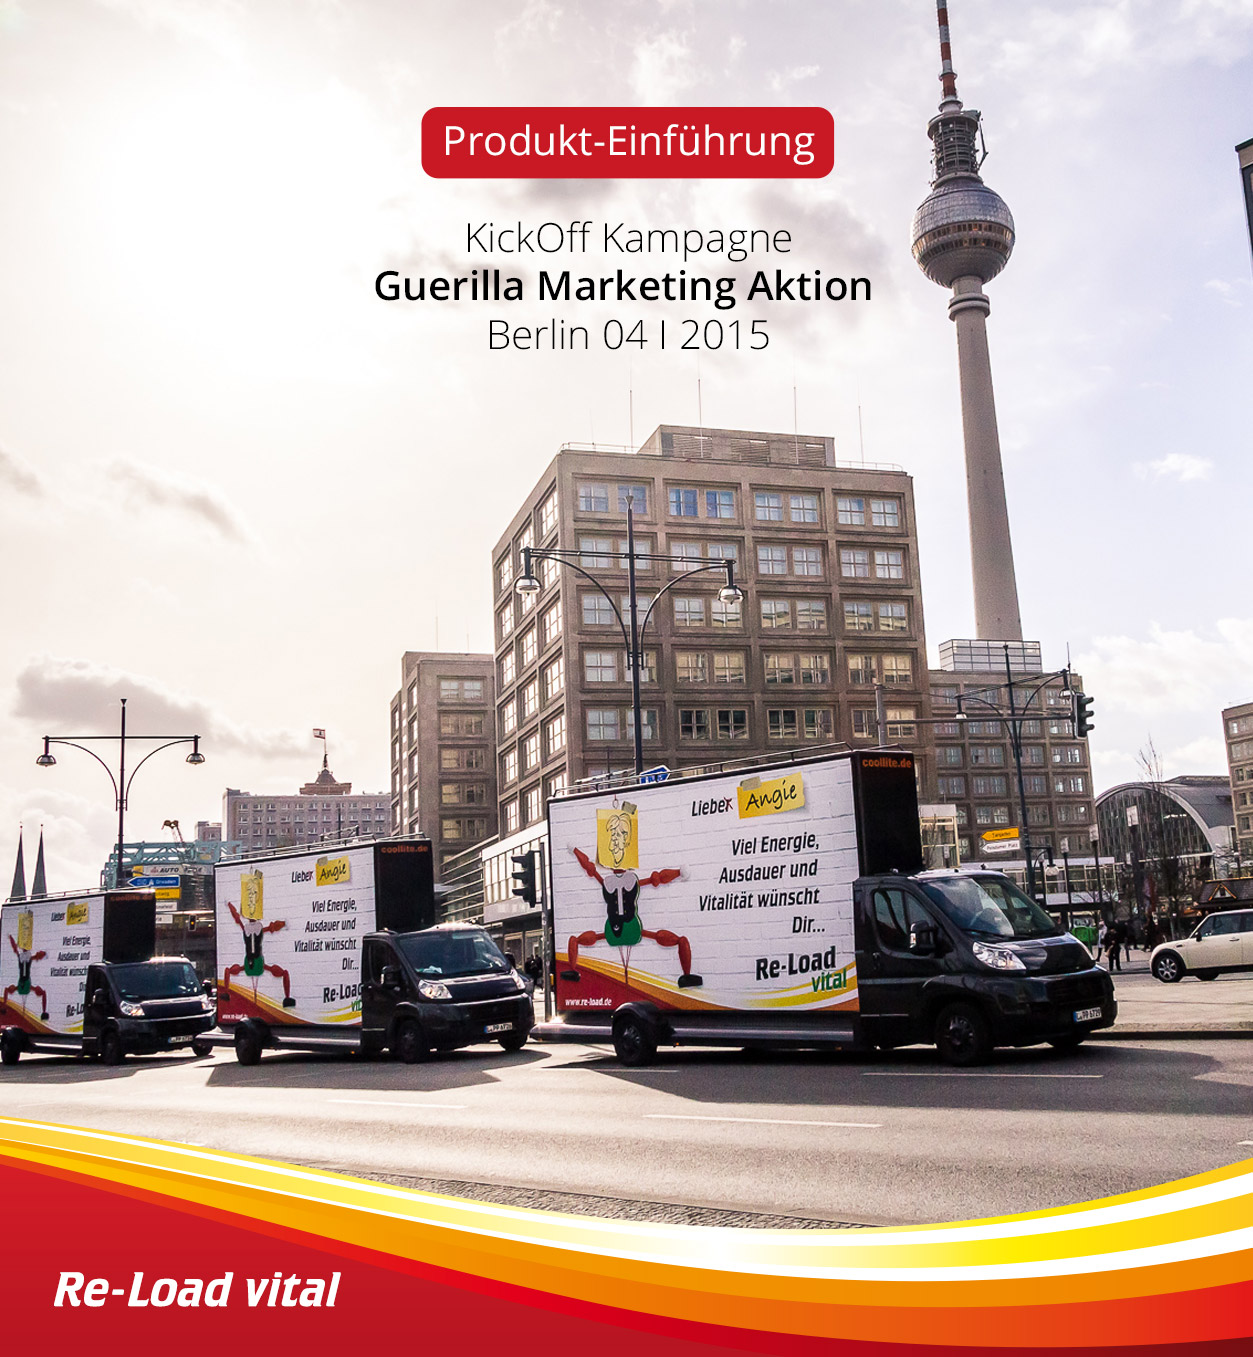 Guerilla Marketing Aktion Berlin